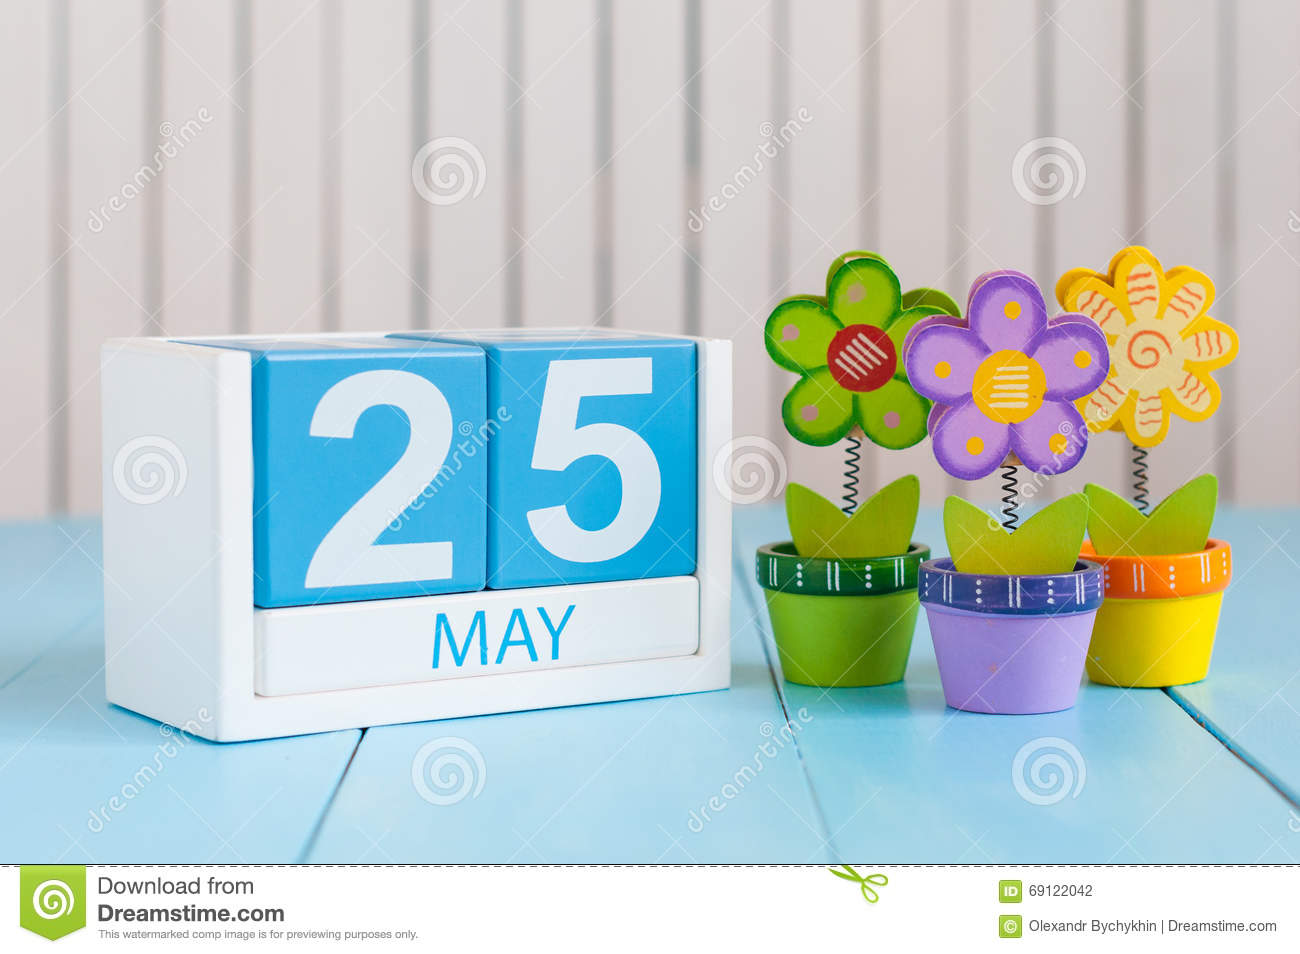 May Th Image May Wooden Color Calendar White Background Flowers Spring Day Empty Space Text International Missing on spiral calendar border